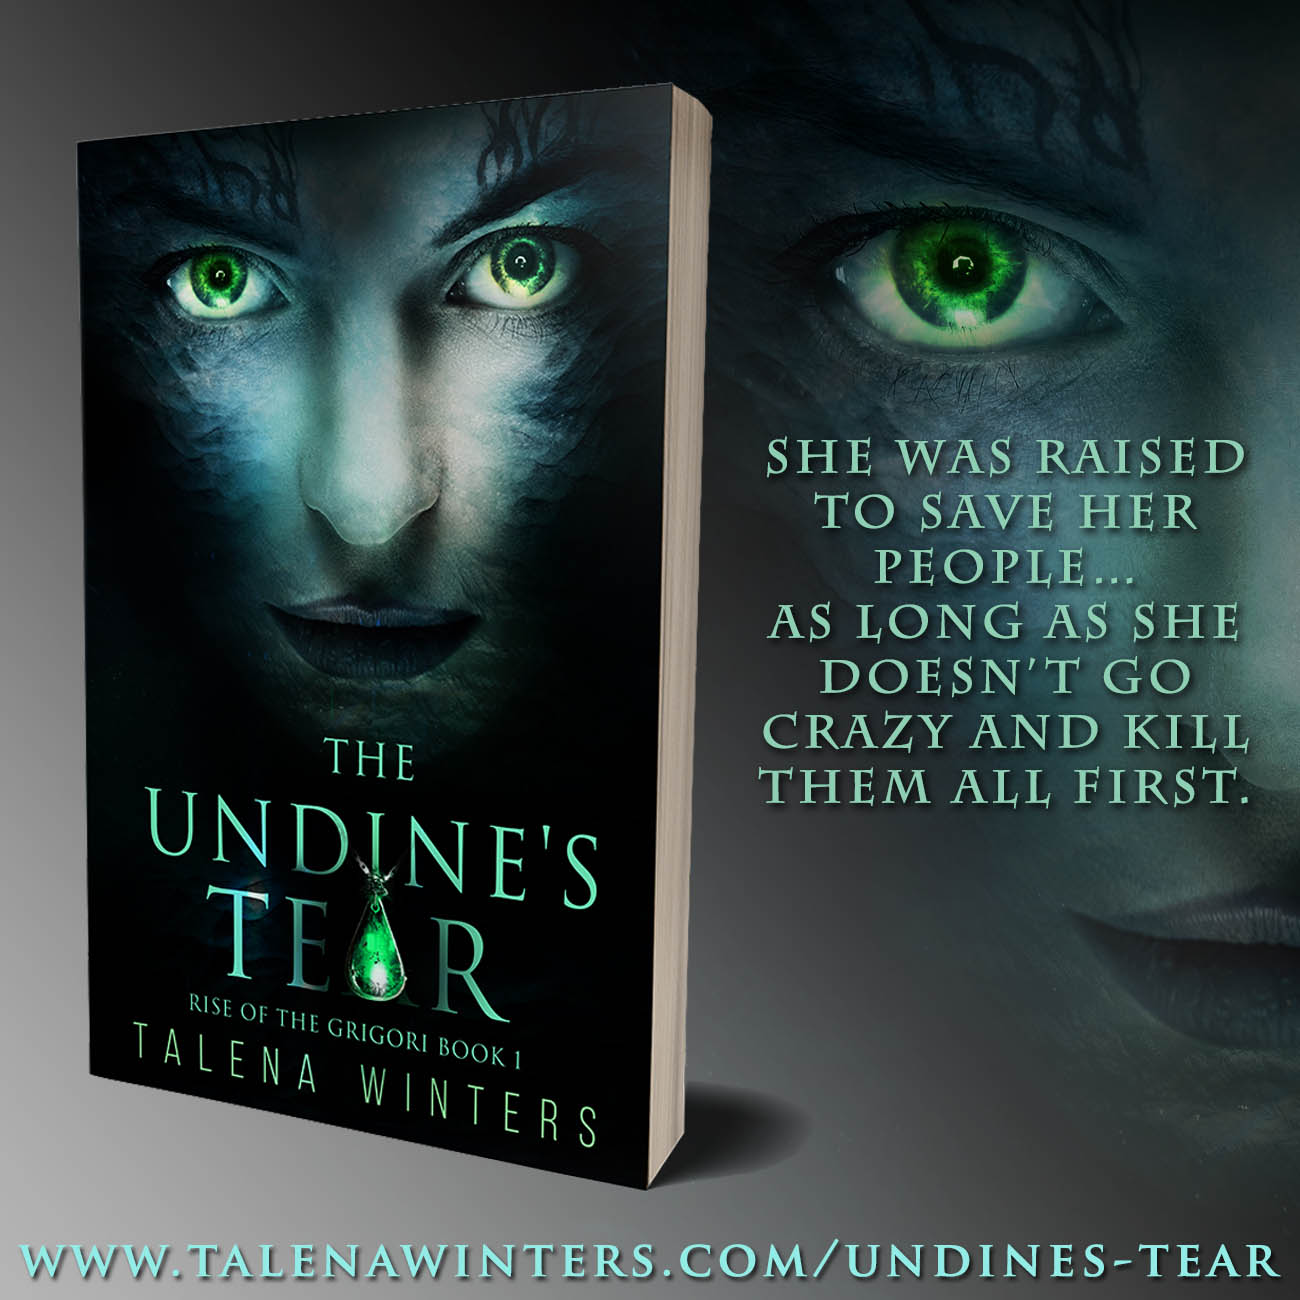 The Undine's Tear  by Talena Winters - out this week!